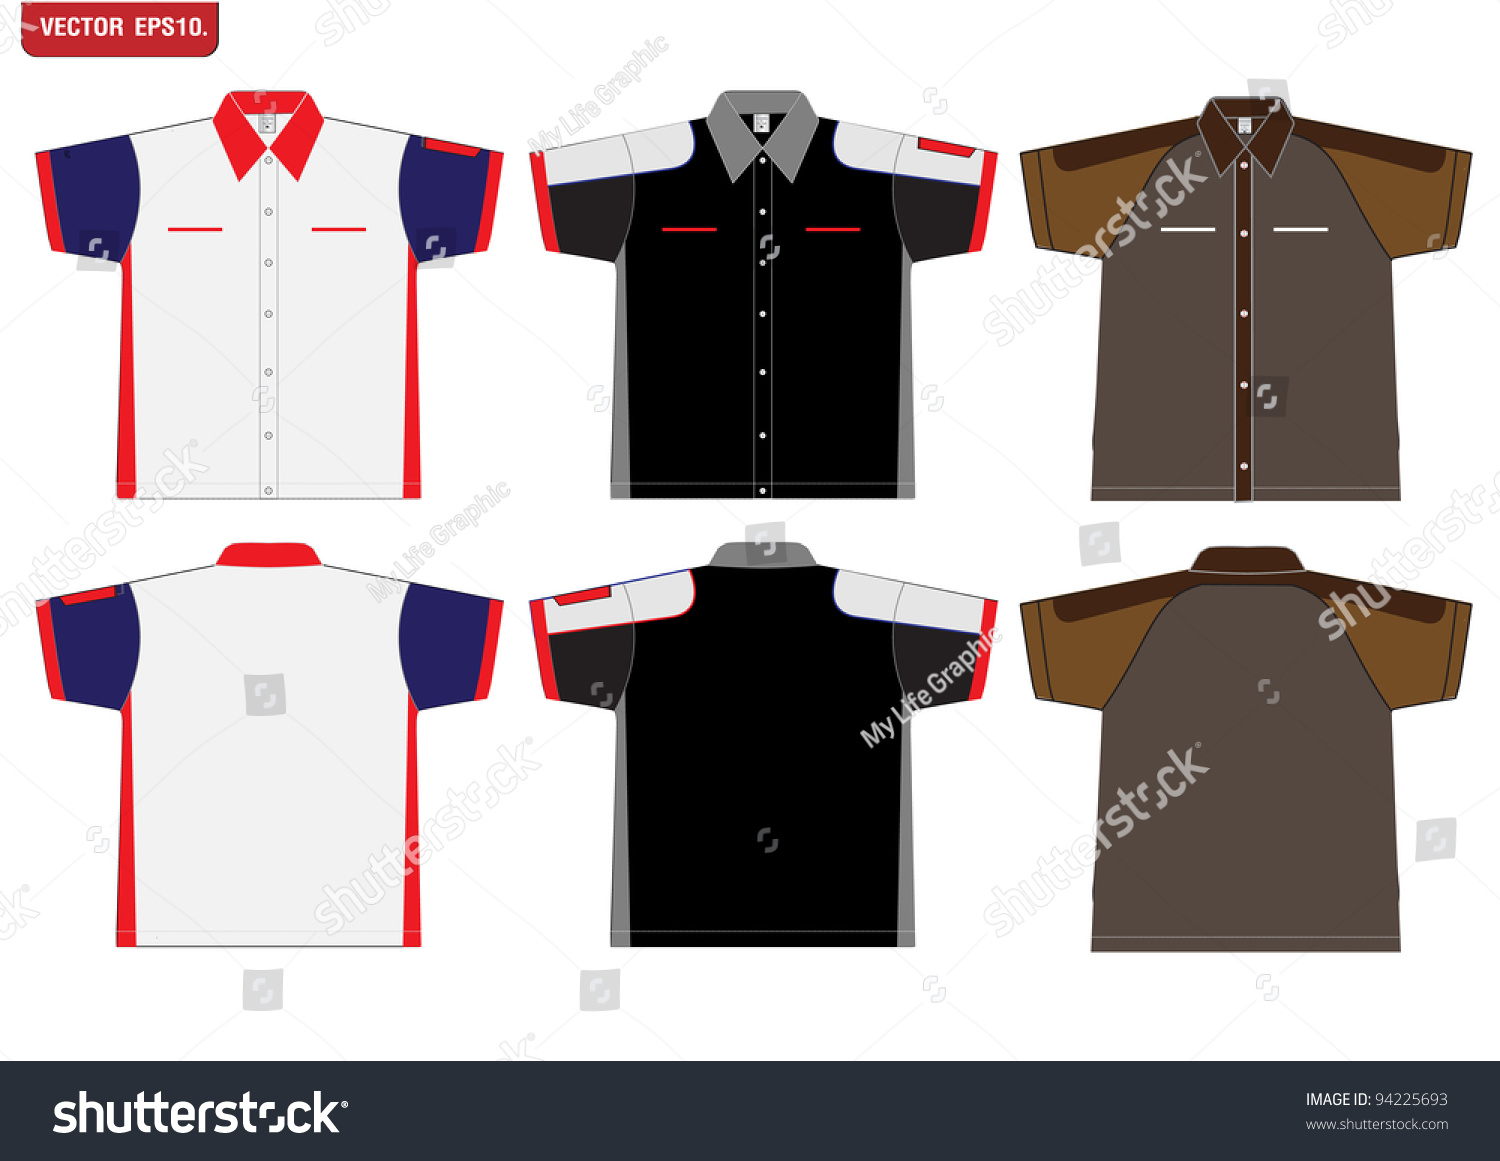 Shirt design with collar - T Shirt Design Vector Template Front And Back View